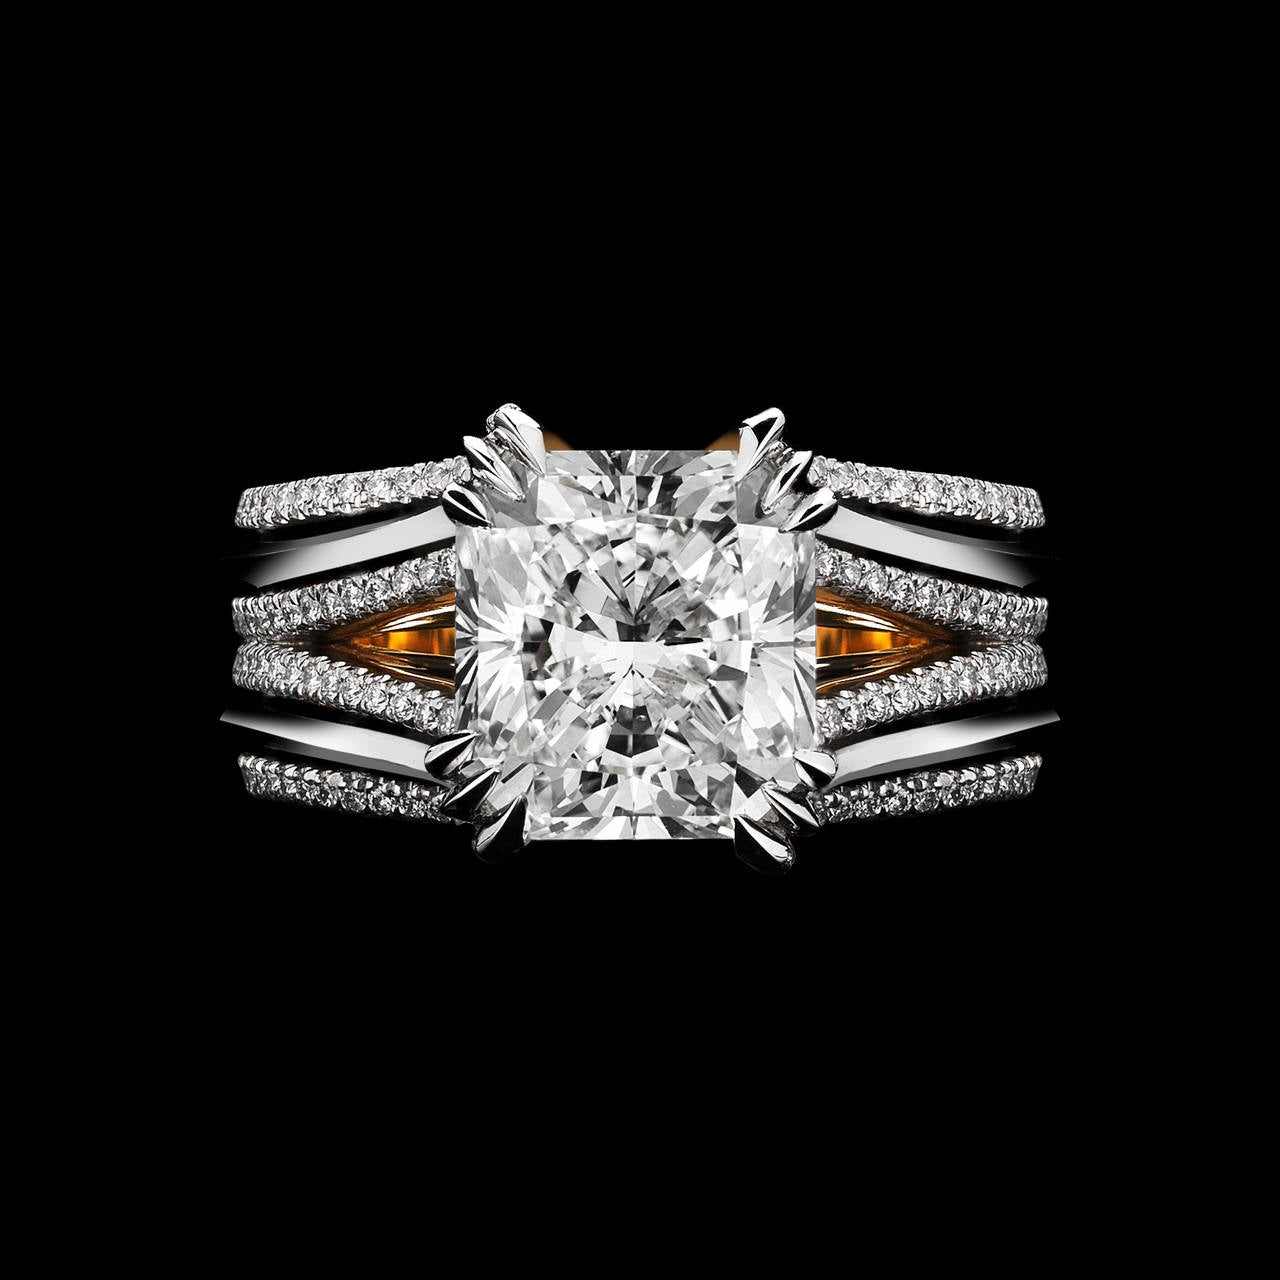 *This design is available with center diamonds weighing from 1ct - 10 cts and larger. Please contact us for more information on this piece or on creating your own custom Alexandra Mor Design.    An Alexandra Mor engagement ring featuring a GIA